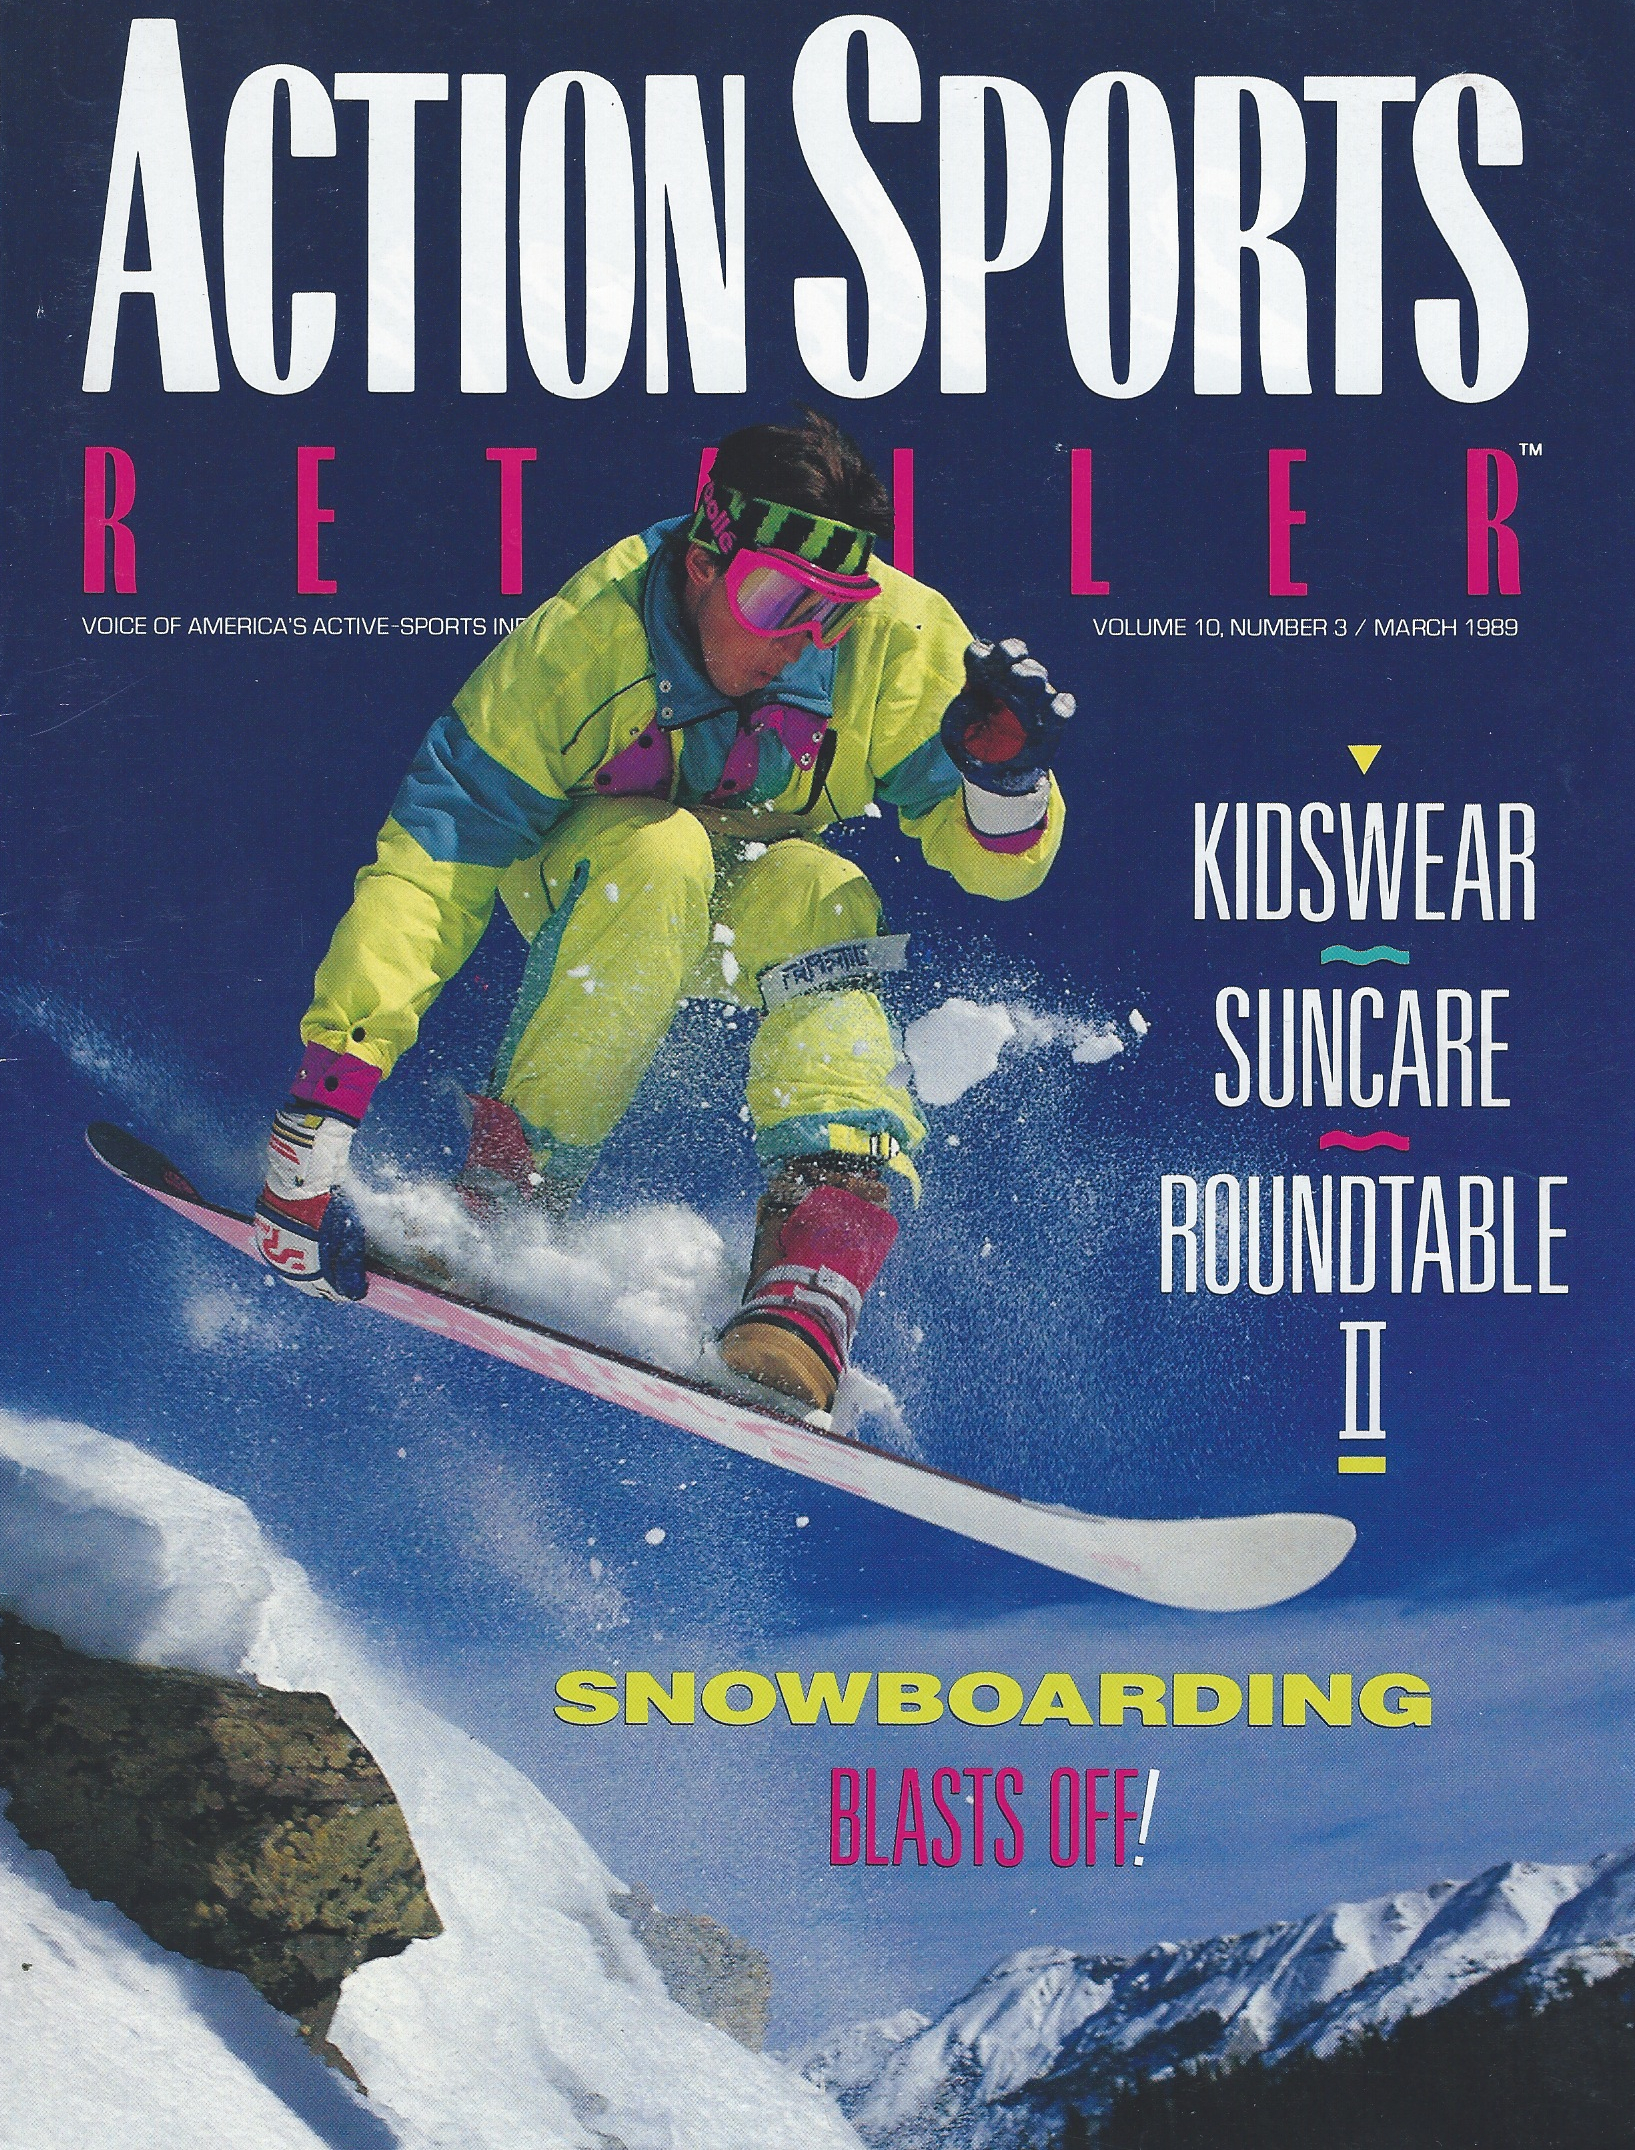 Action Sports Cover.jpg